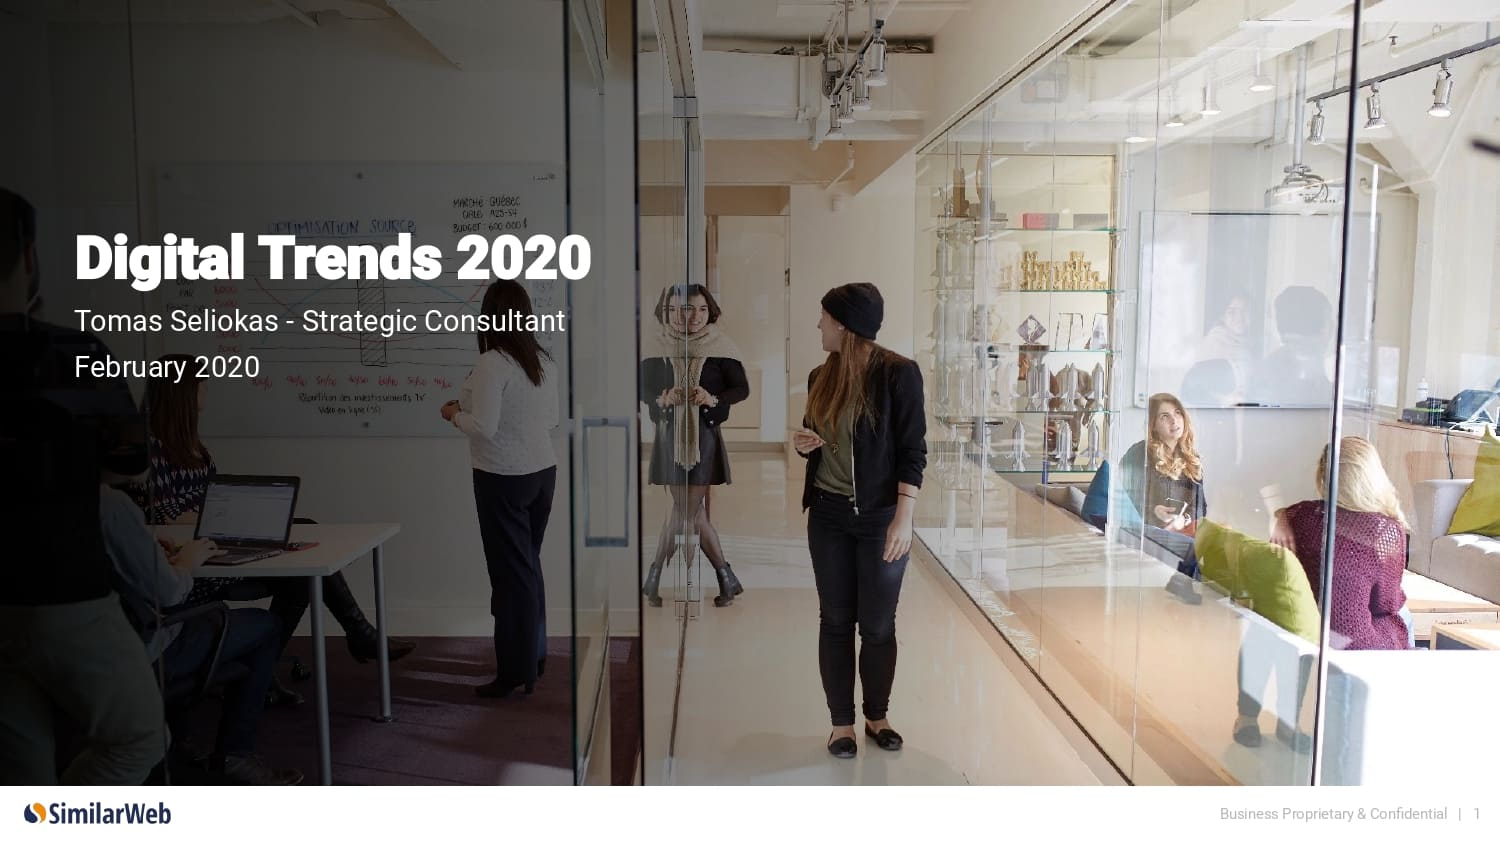 Digital 100: Top Industry Trends of 2020 by Tomas Seliokas of SimilarWeb